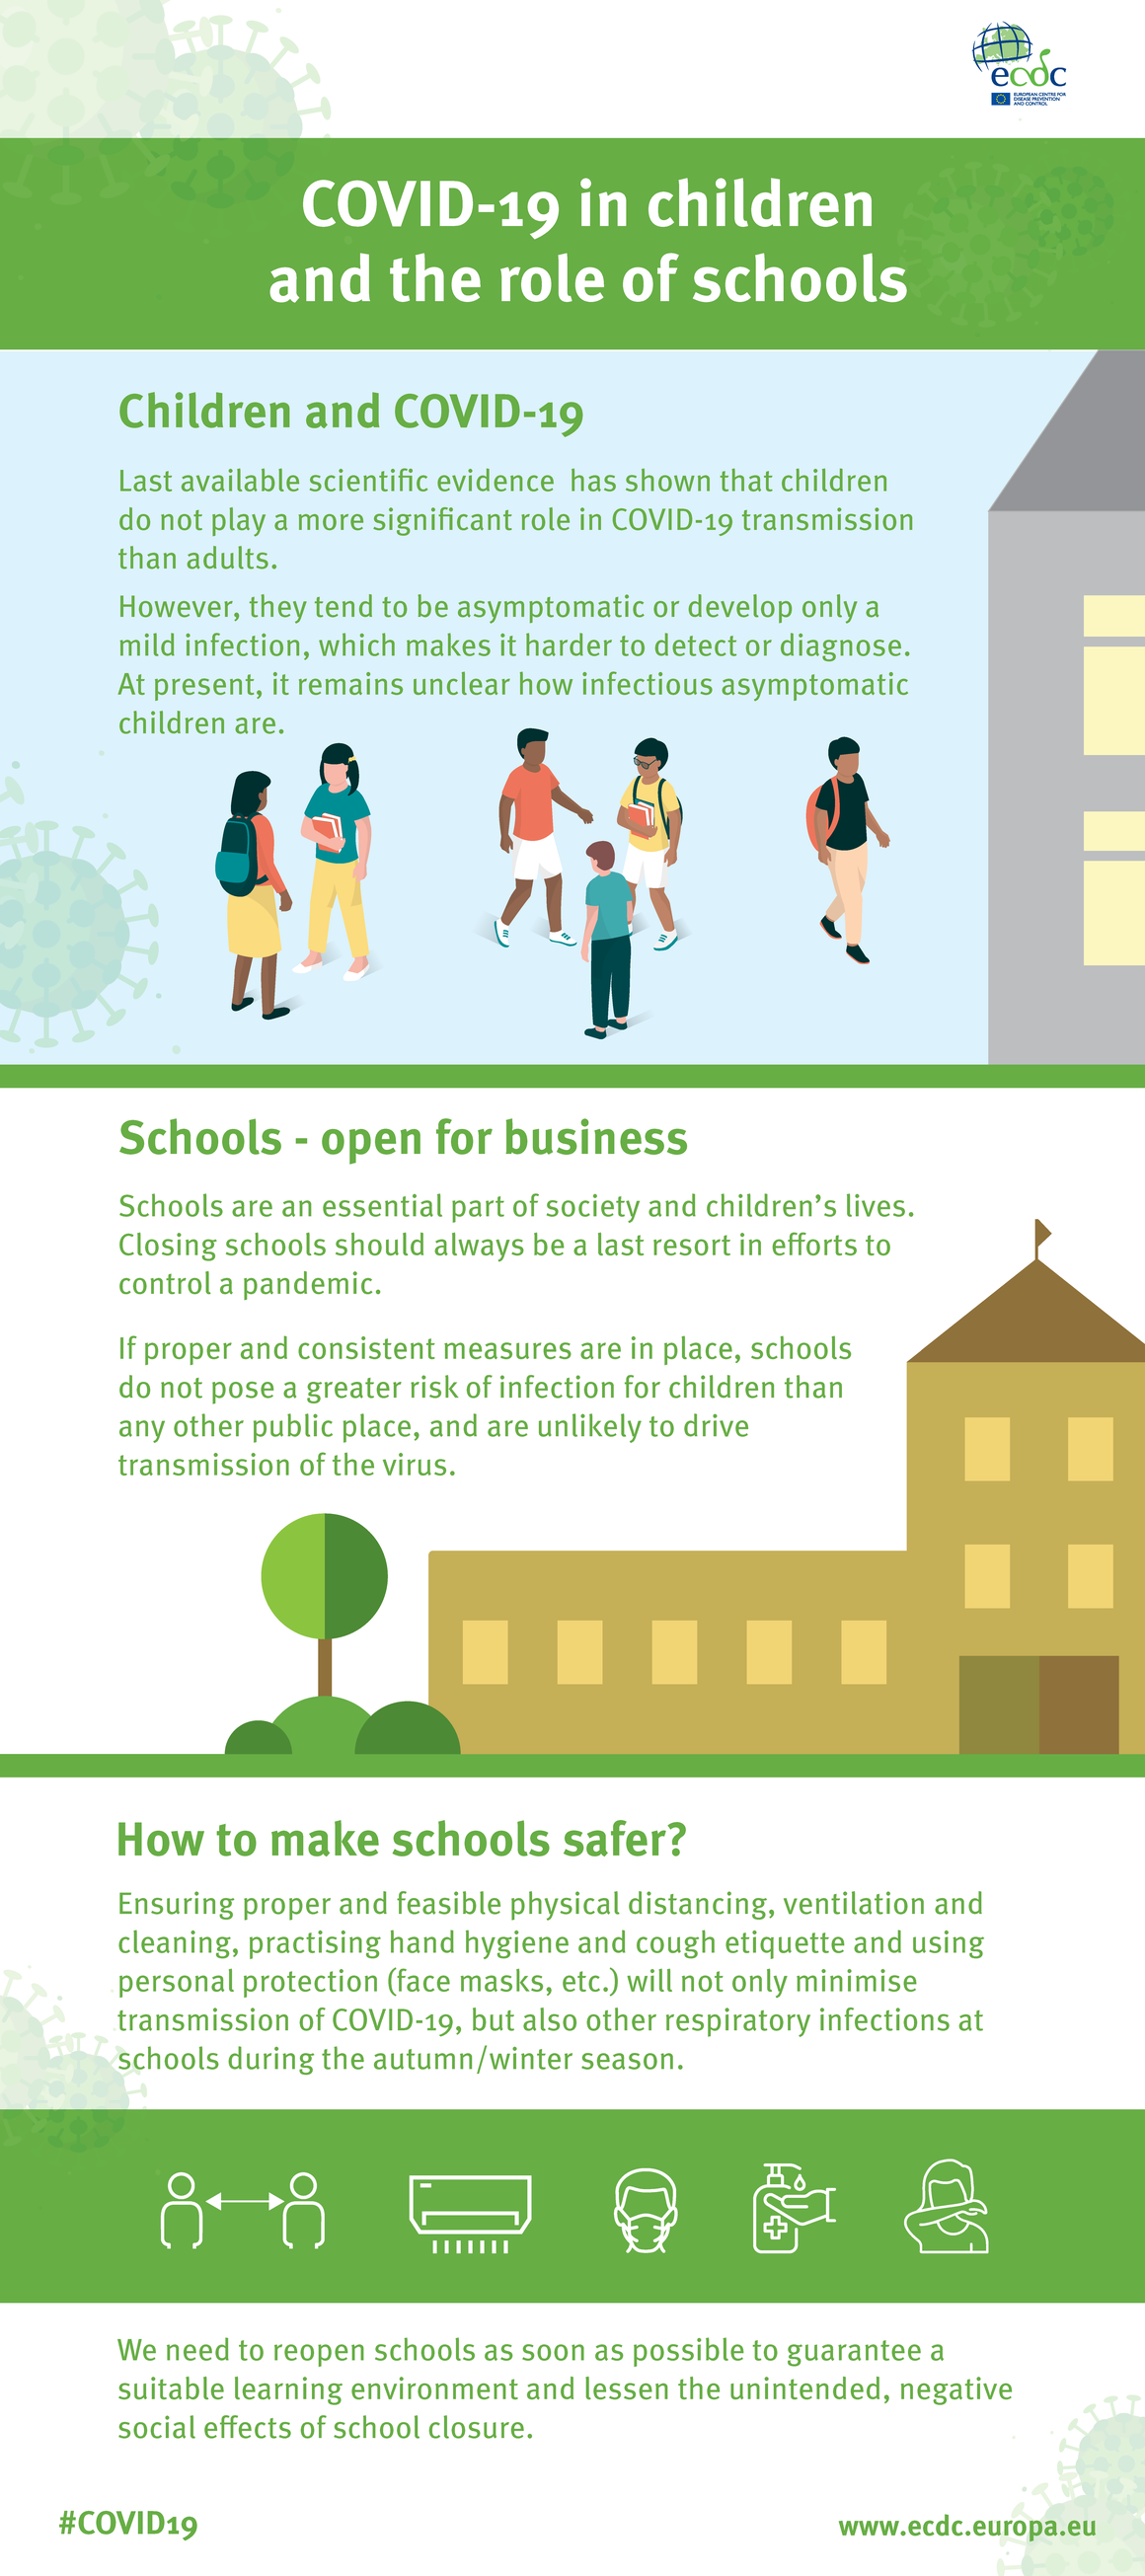 COVID-19 in children and the role of schools #Infographic